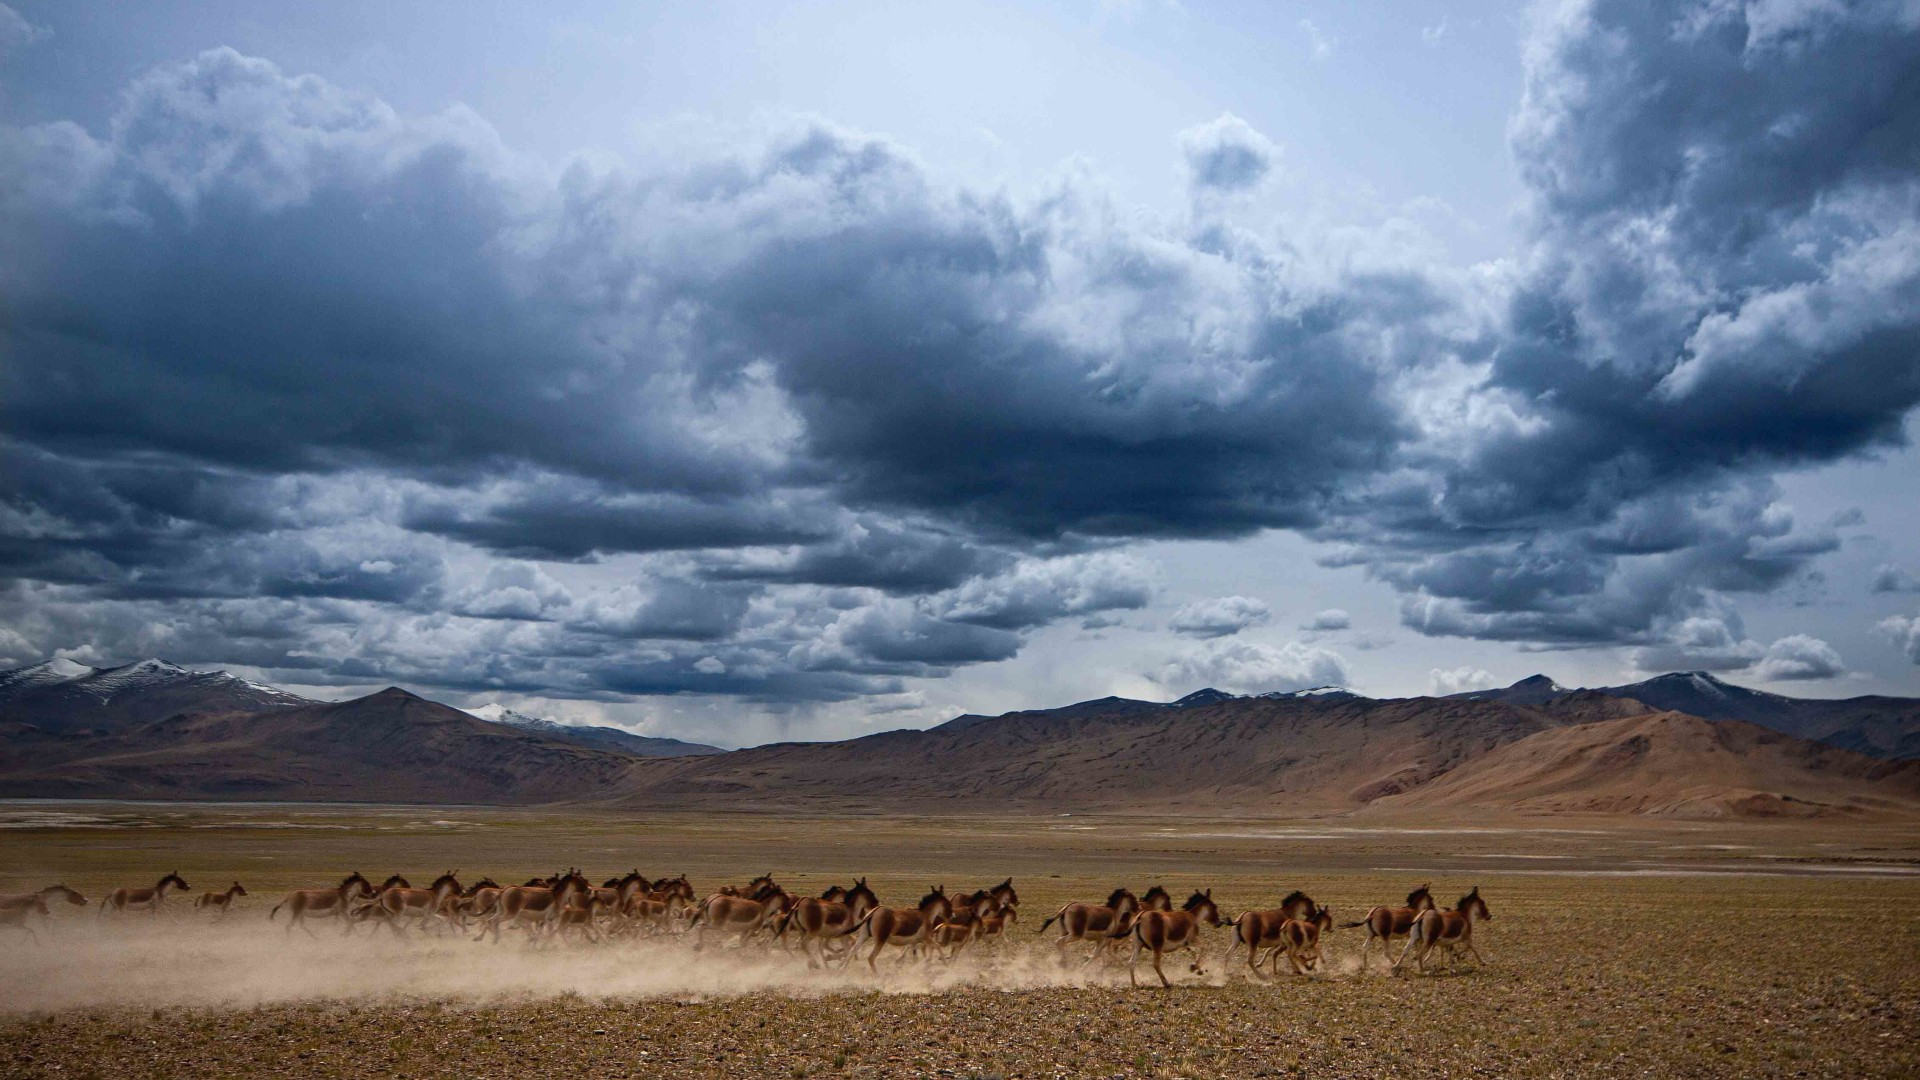 At a Canter: The Kiang of the Changthang